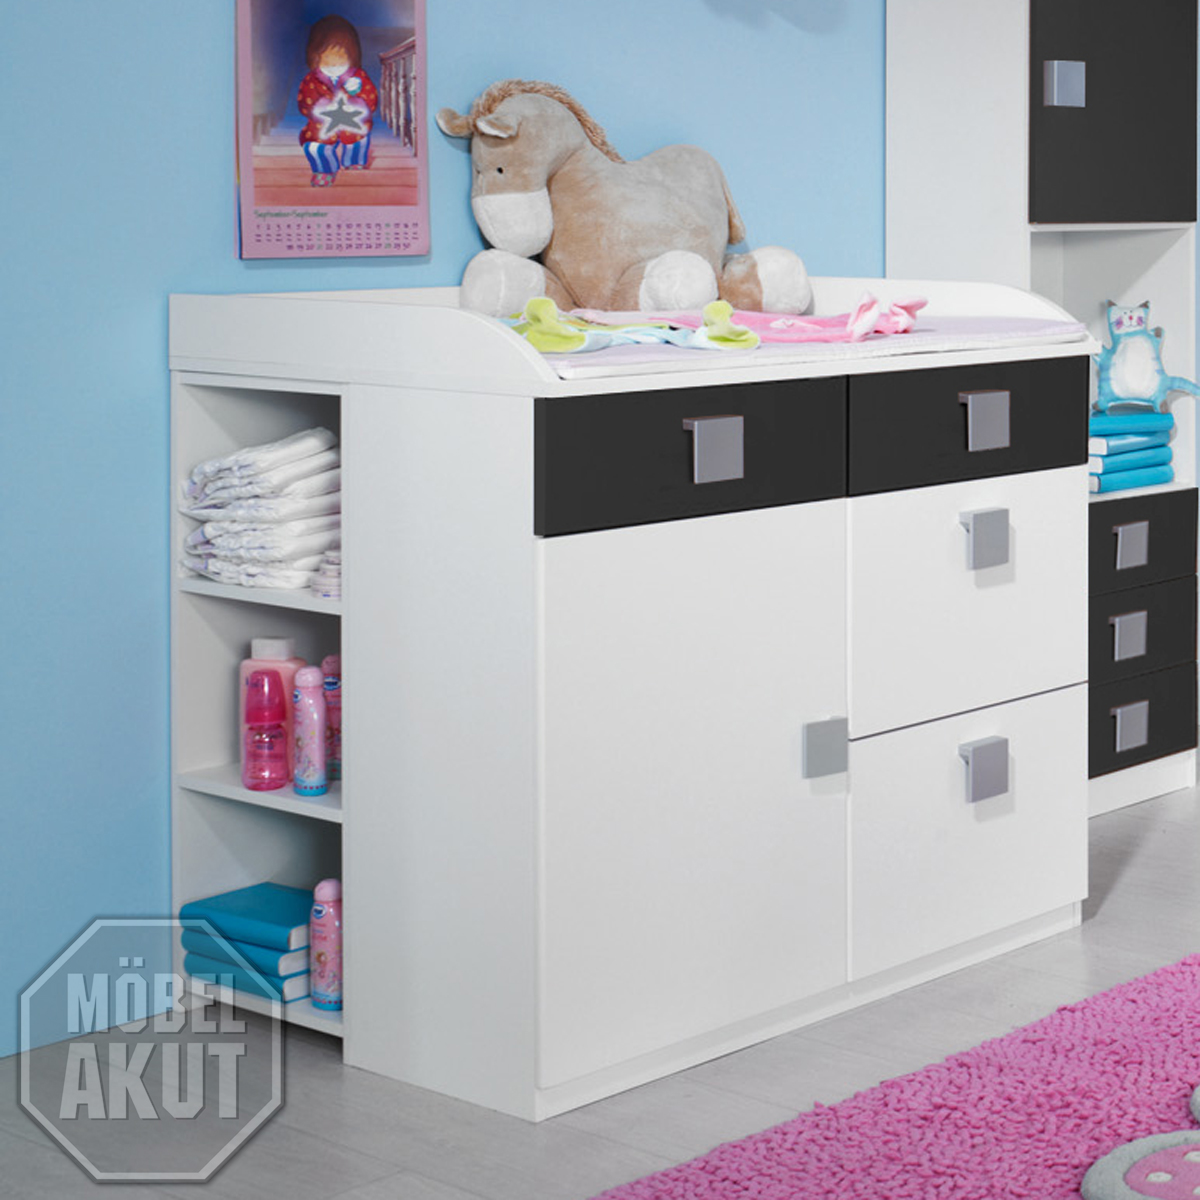 wickelkommode skate kommode mit aufsatz in weiss und grau ebay. Black Bedroom Furniture Sets. Home Design Ideas